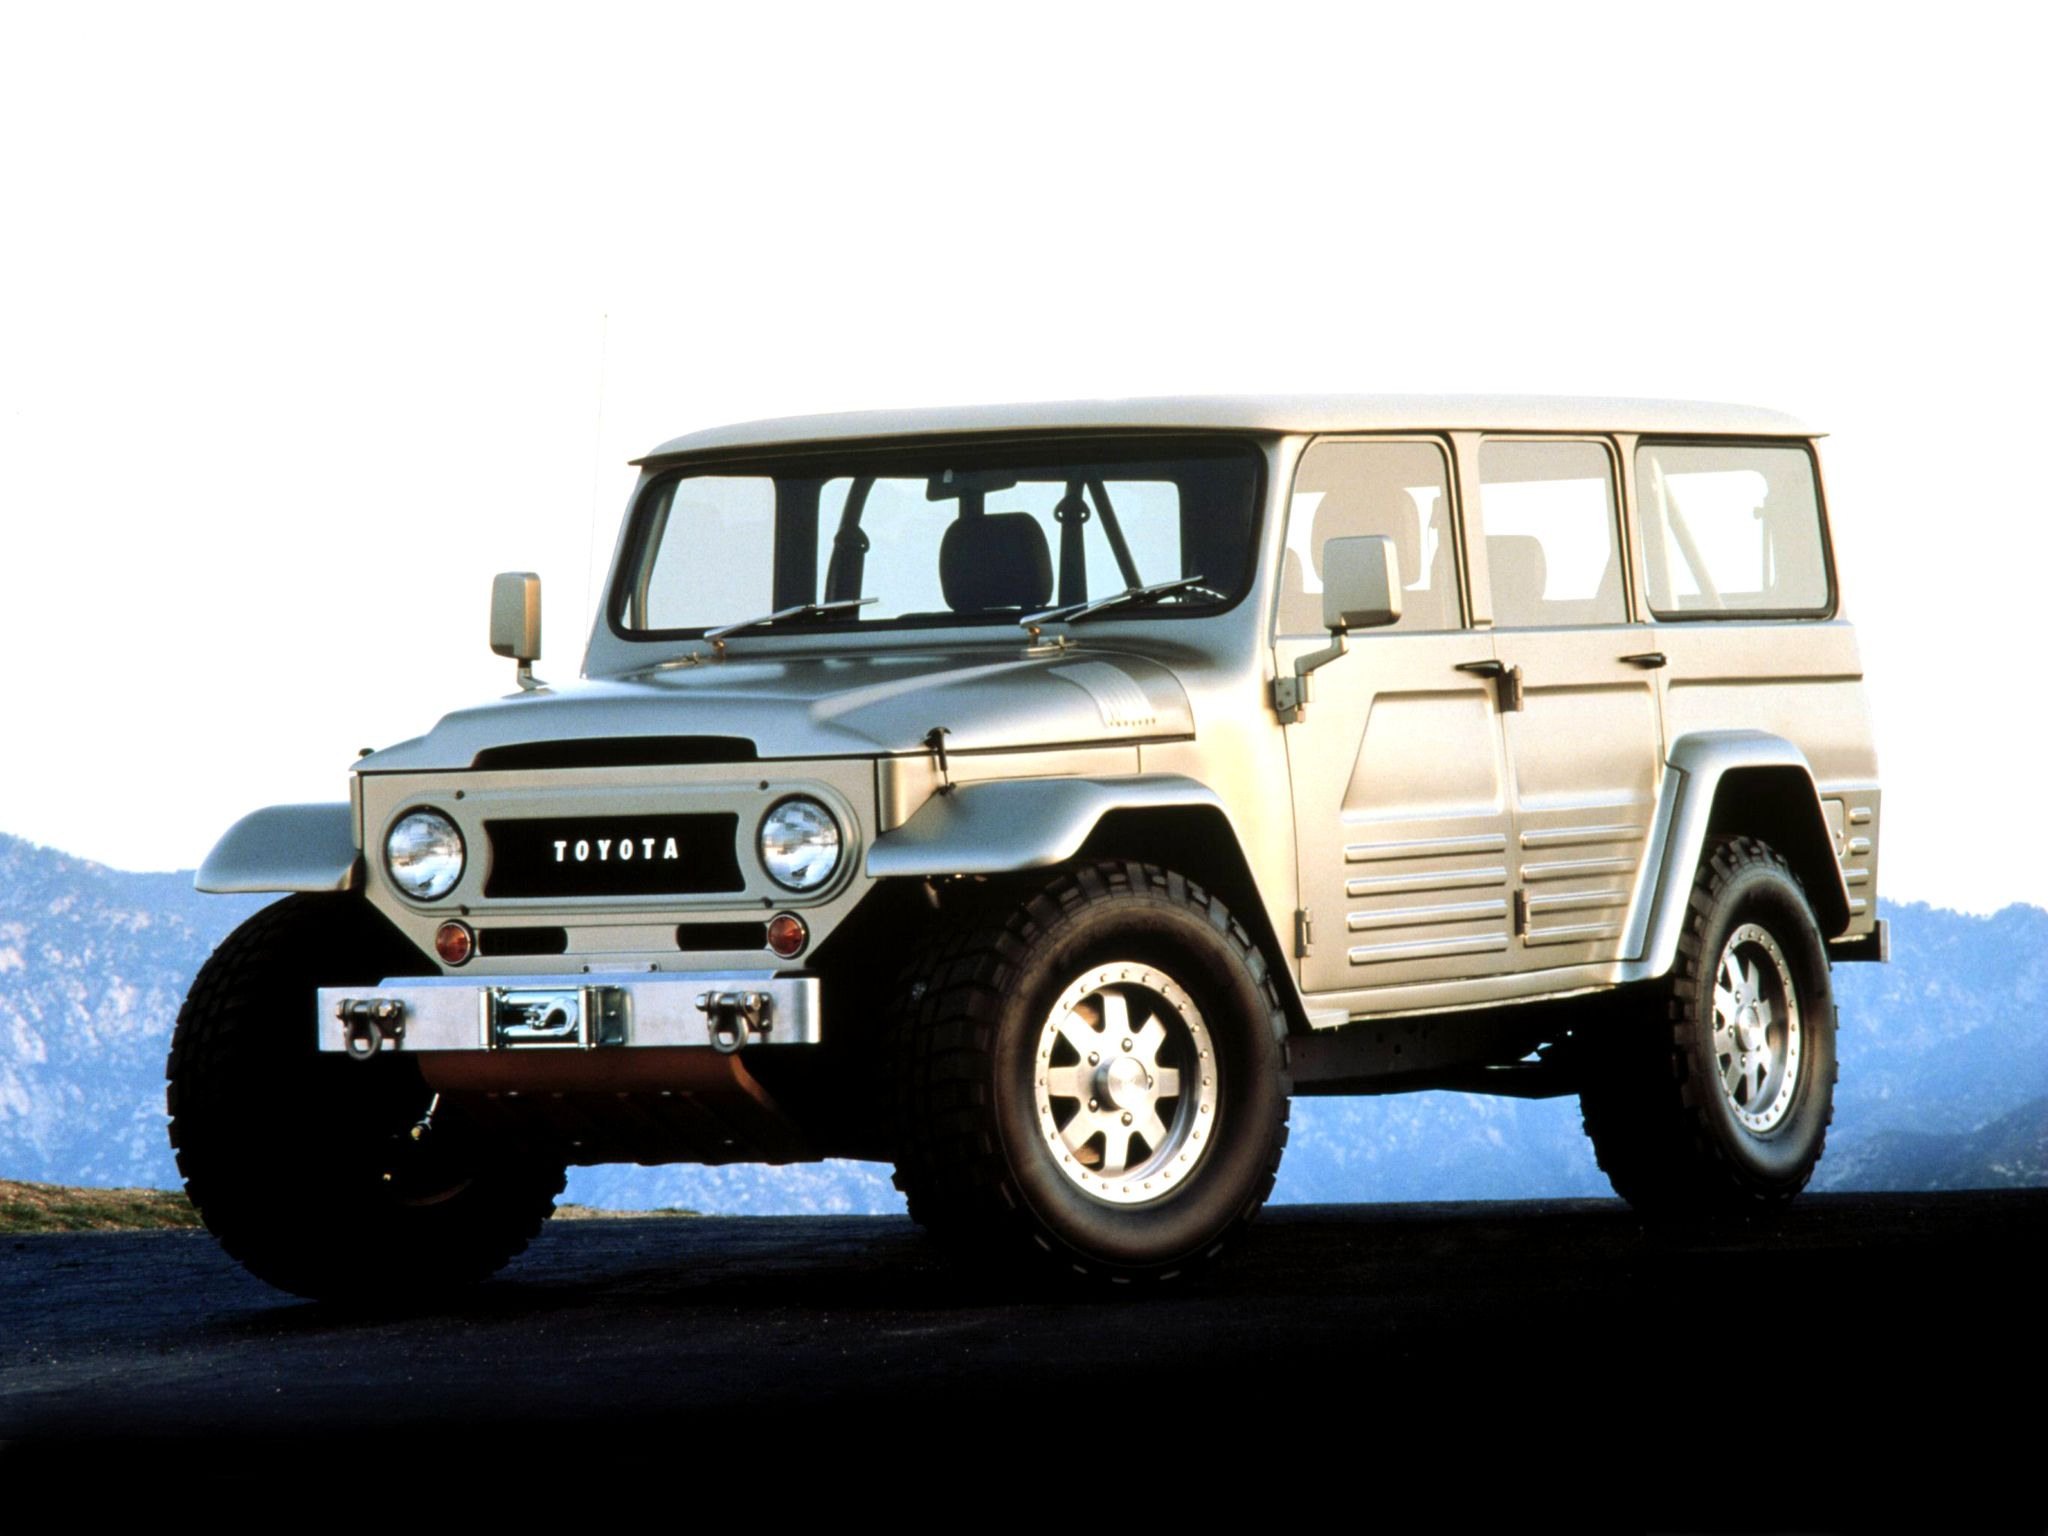 Fj45 Toyota Land Cruiser Concept 2003 Vehicles